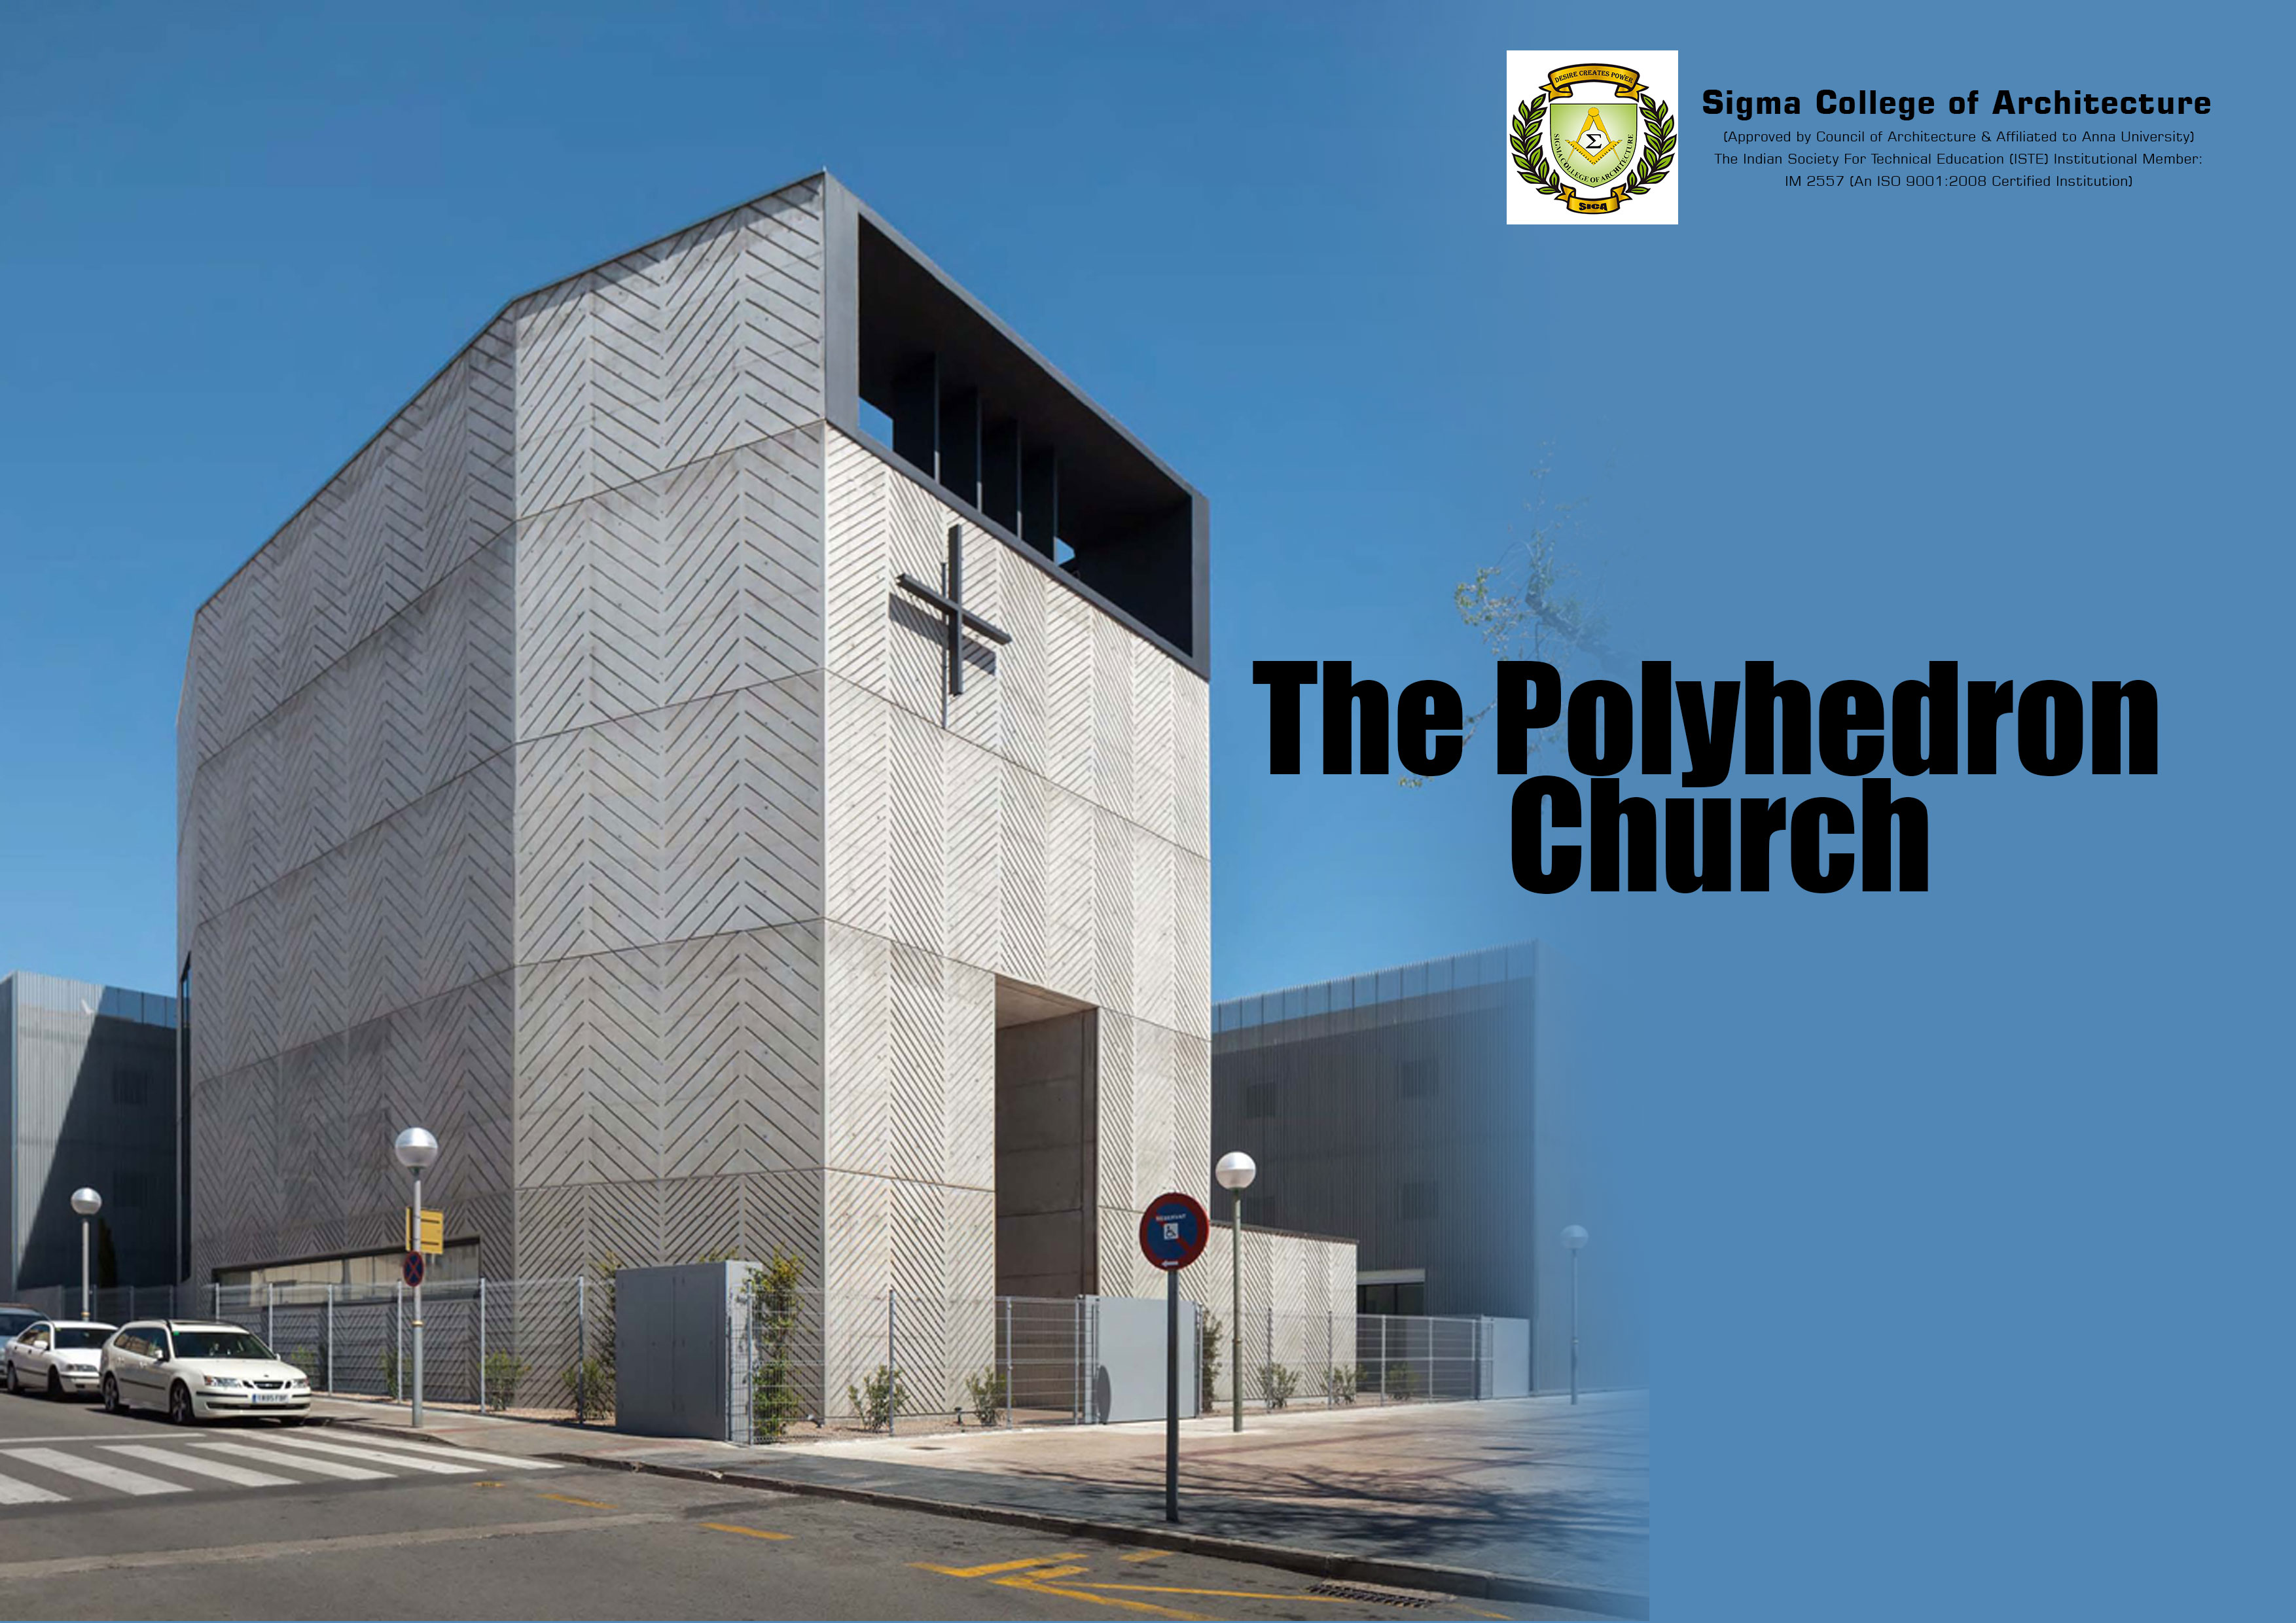 The Polyhedron Church